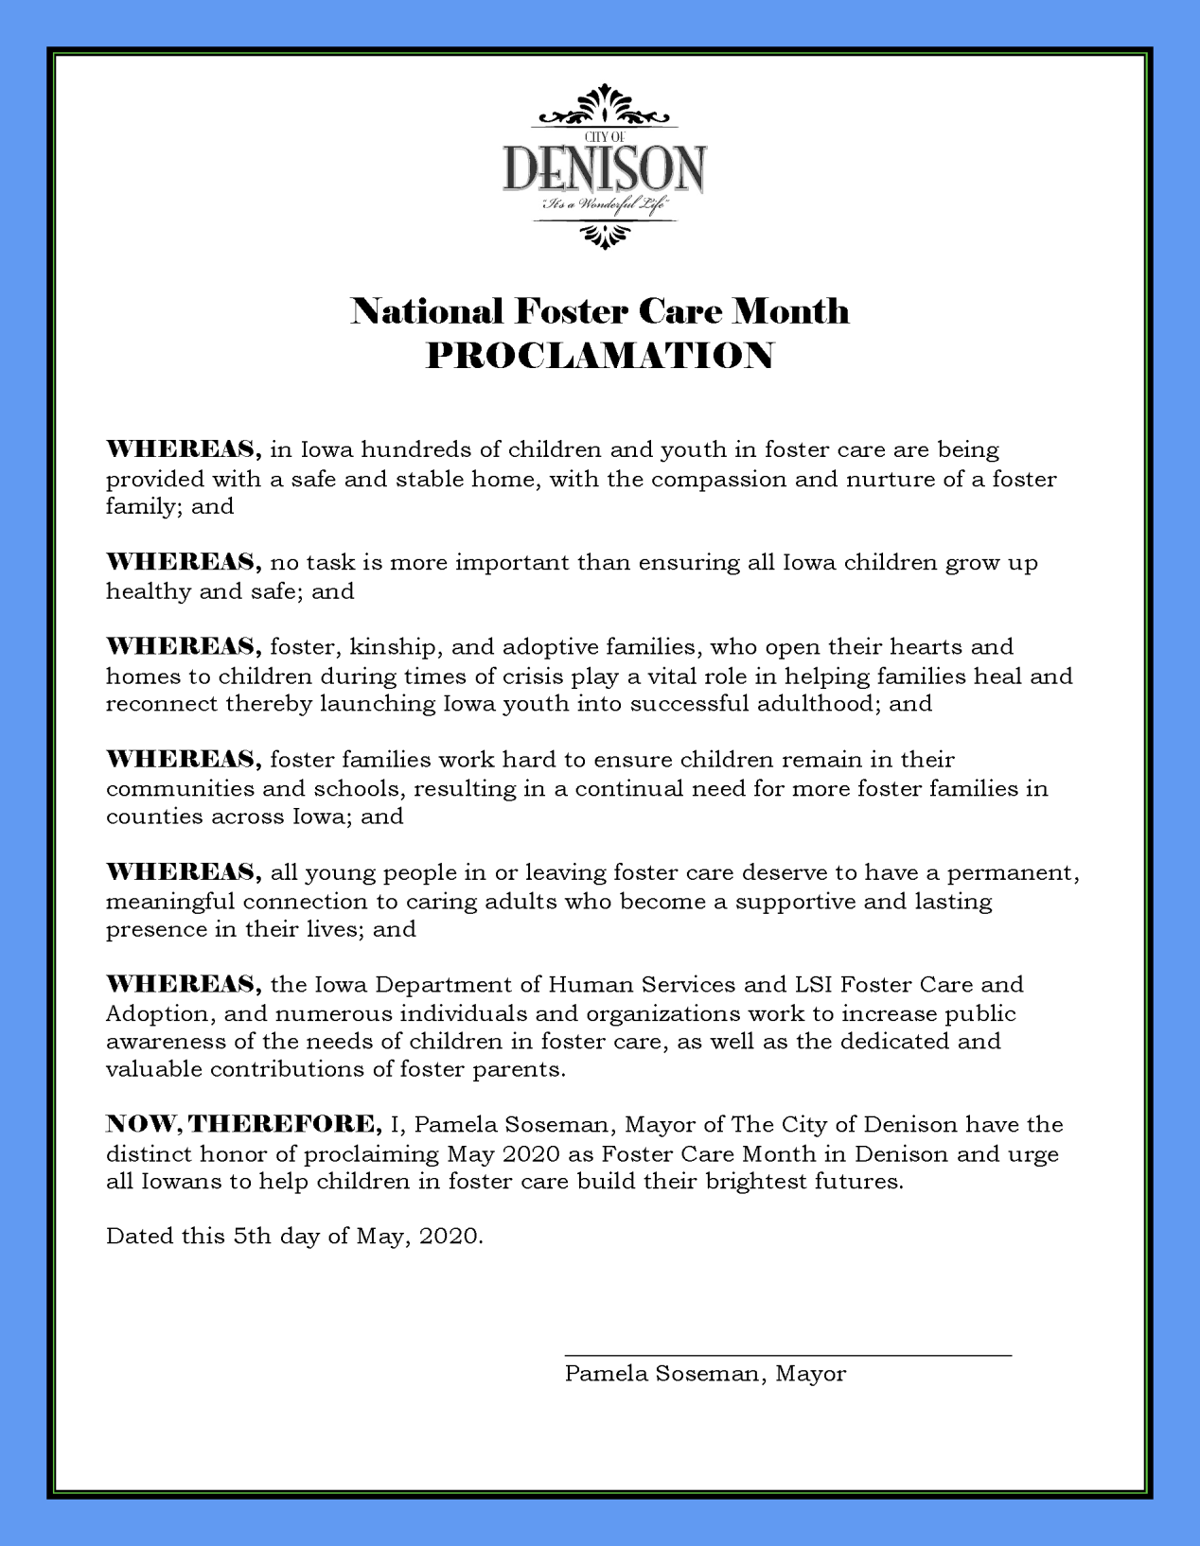 National Foster Care Month proclamation